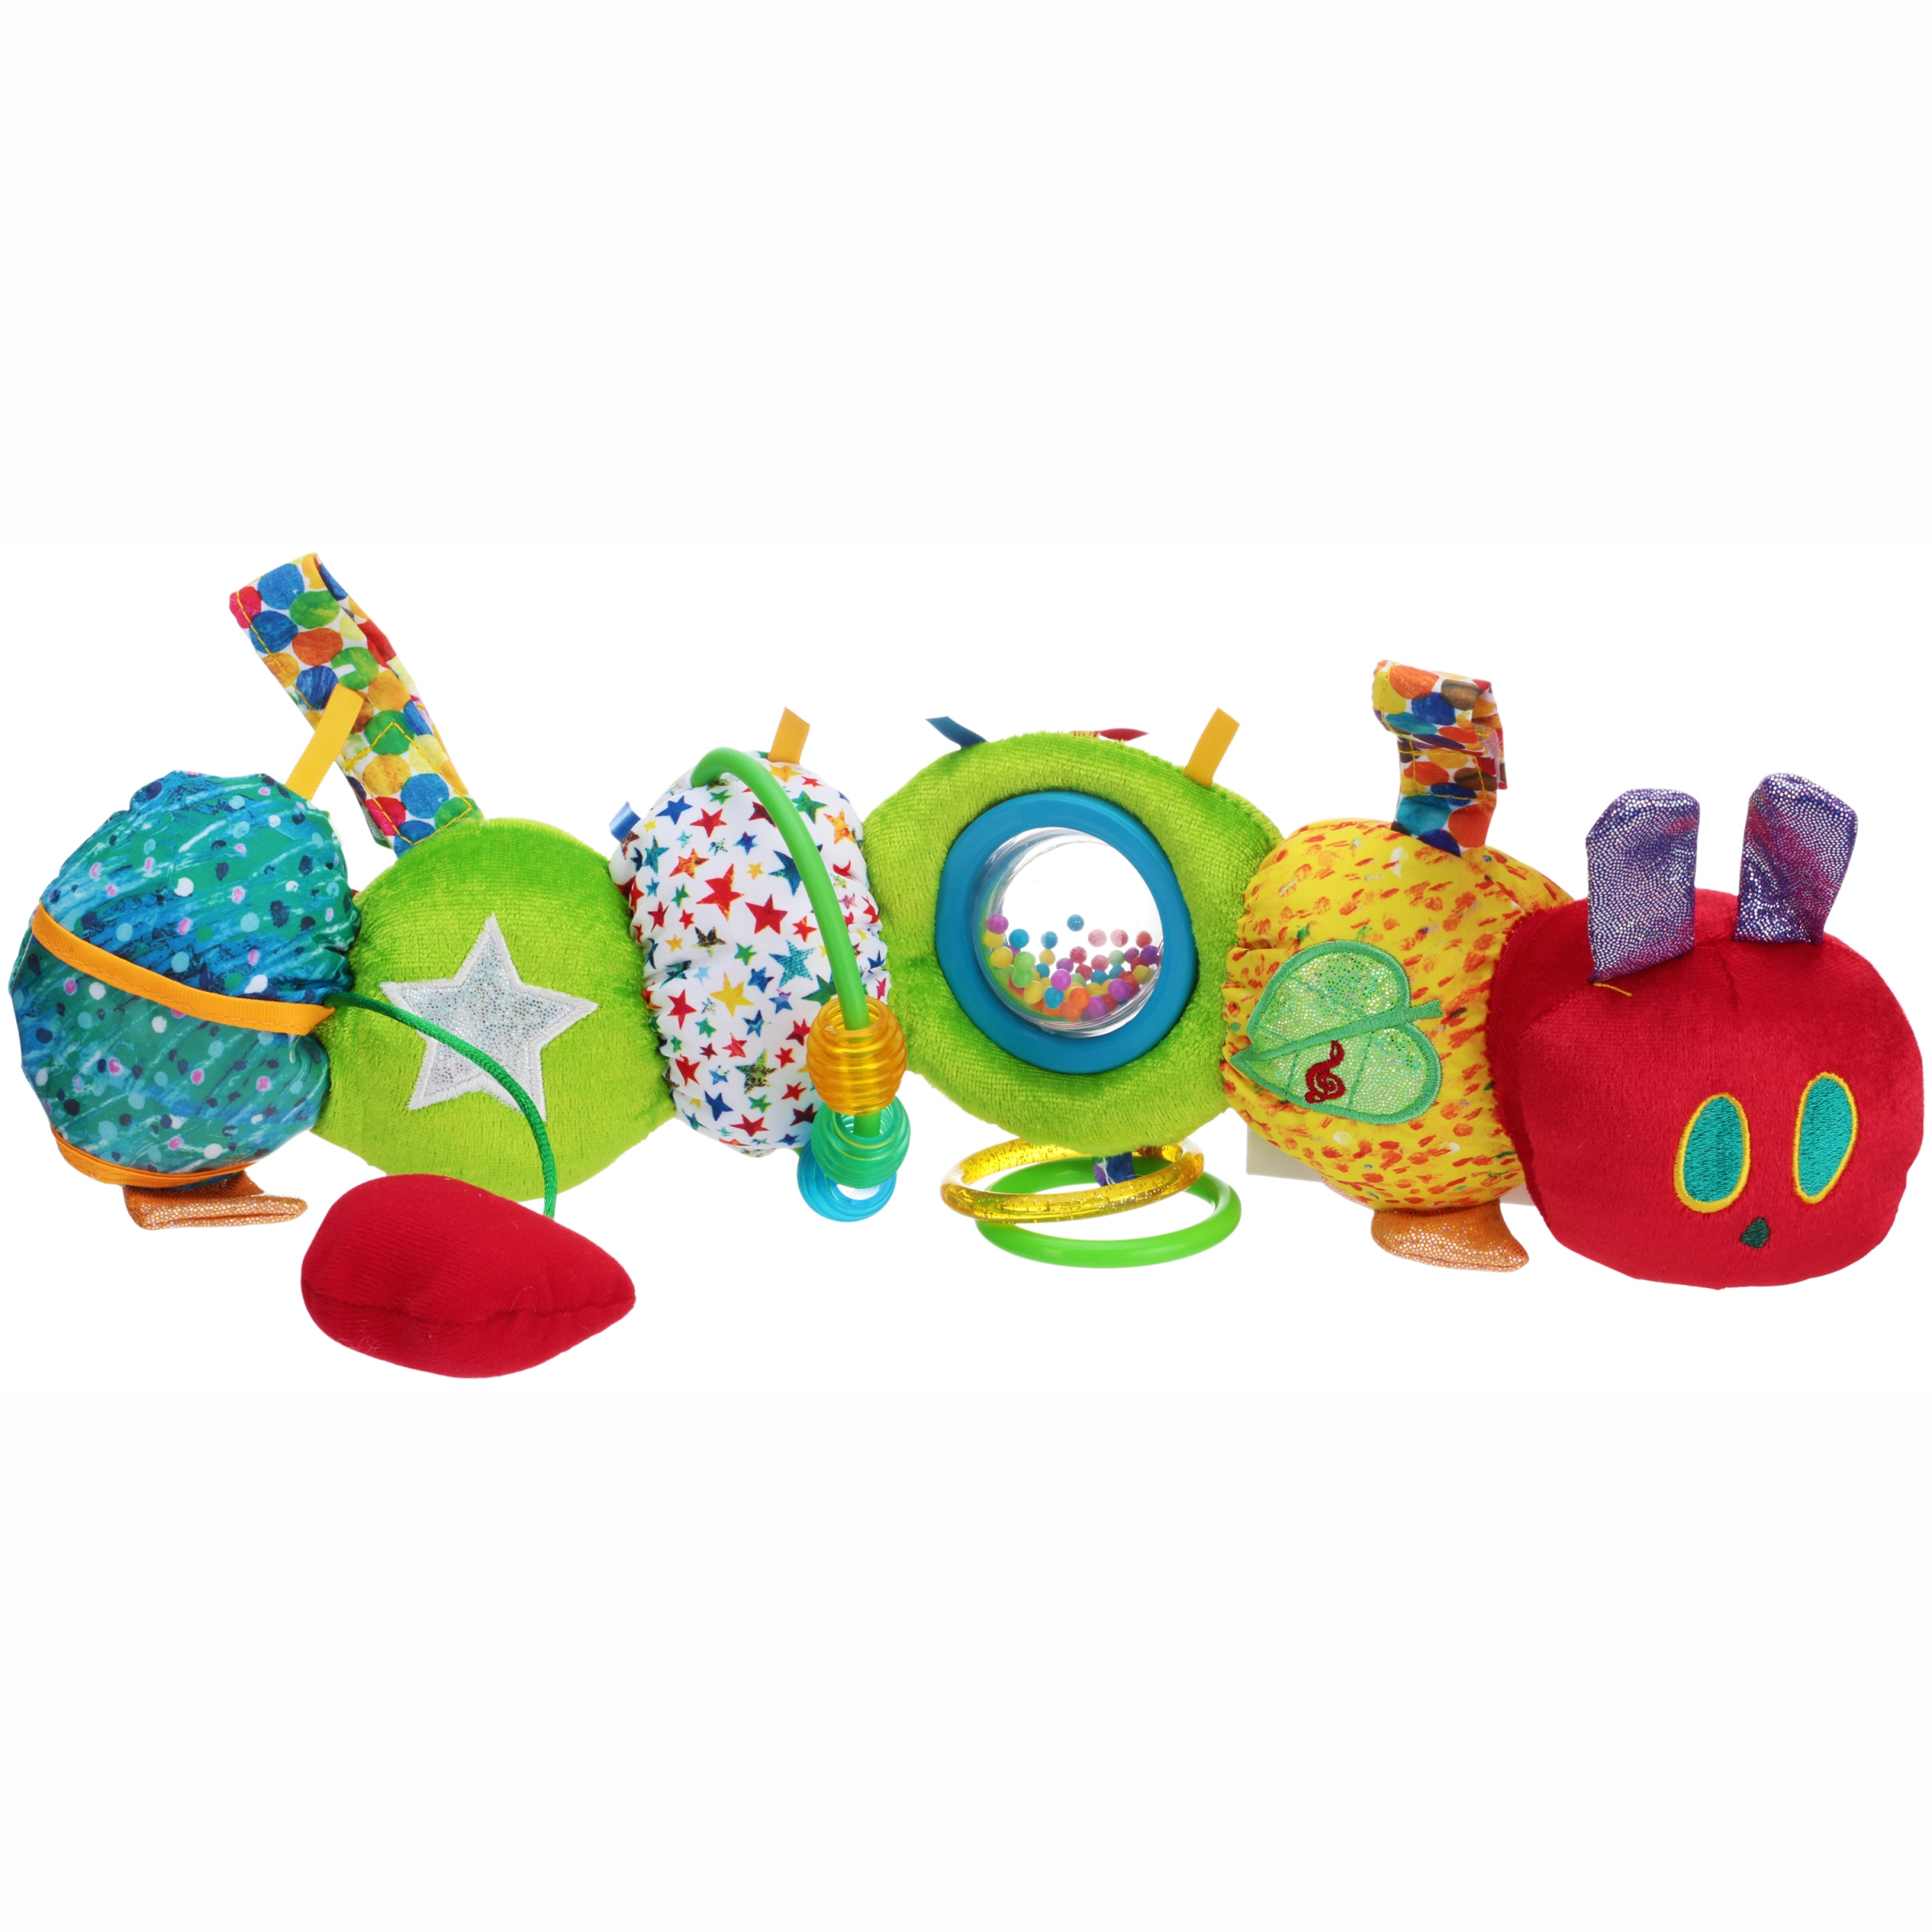 The World of Eric Carle™ The Very Hungry Caterpillar™ Attachable Activity Caterpillar with Music and Sound